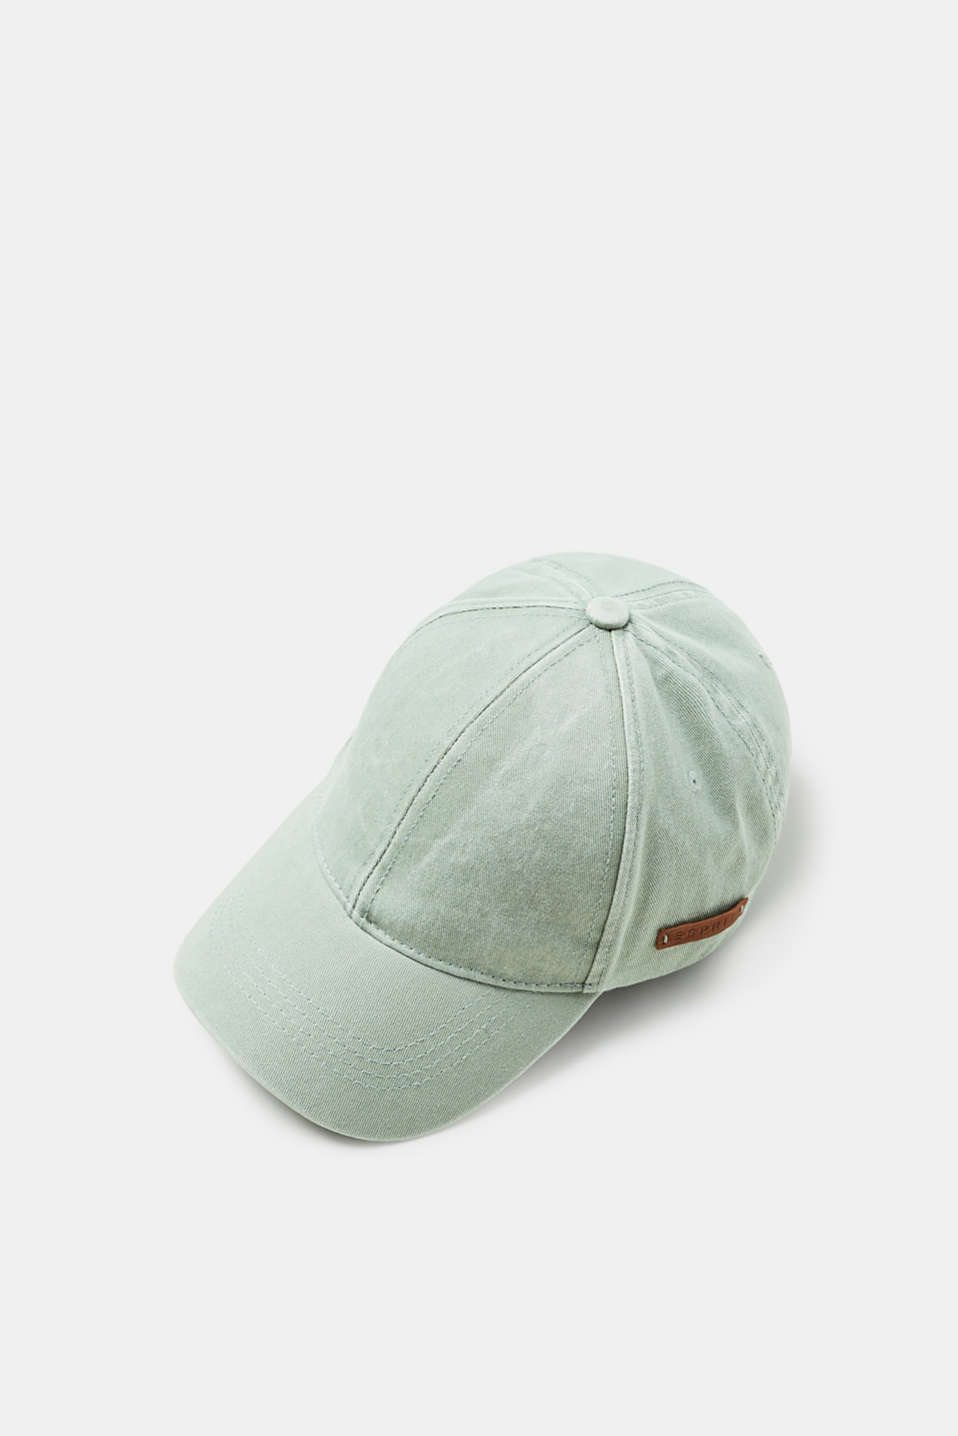 Esprit - Canvas baseball cap with a subtle garment-washed effect